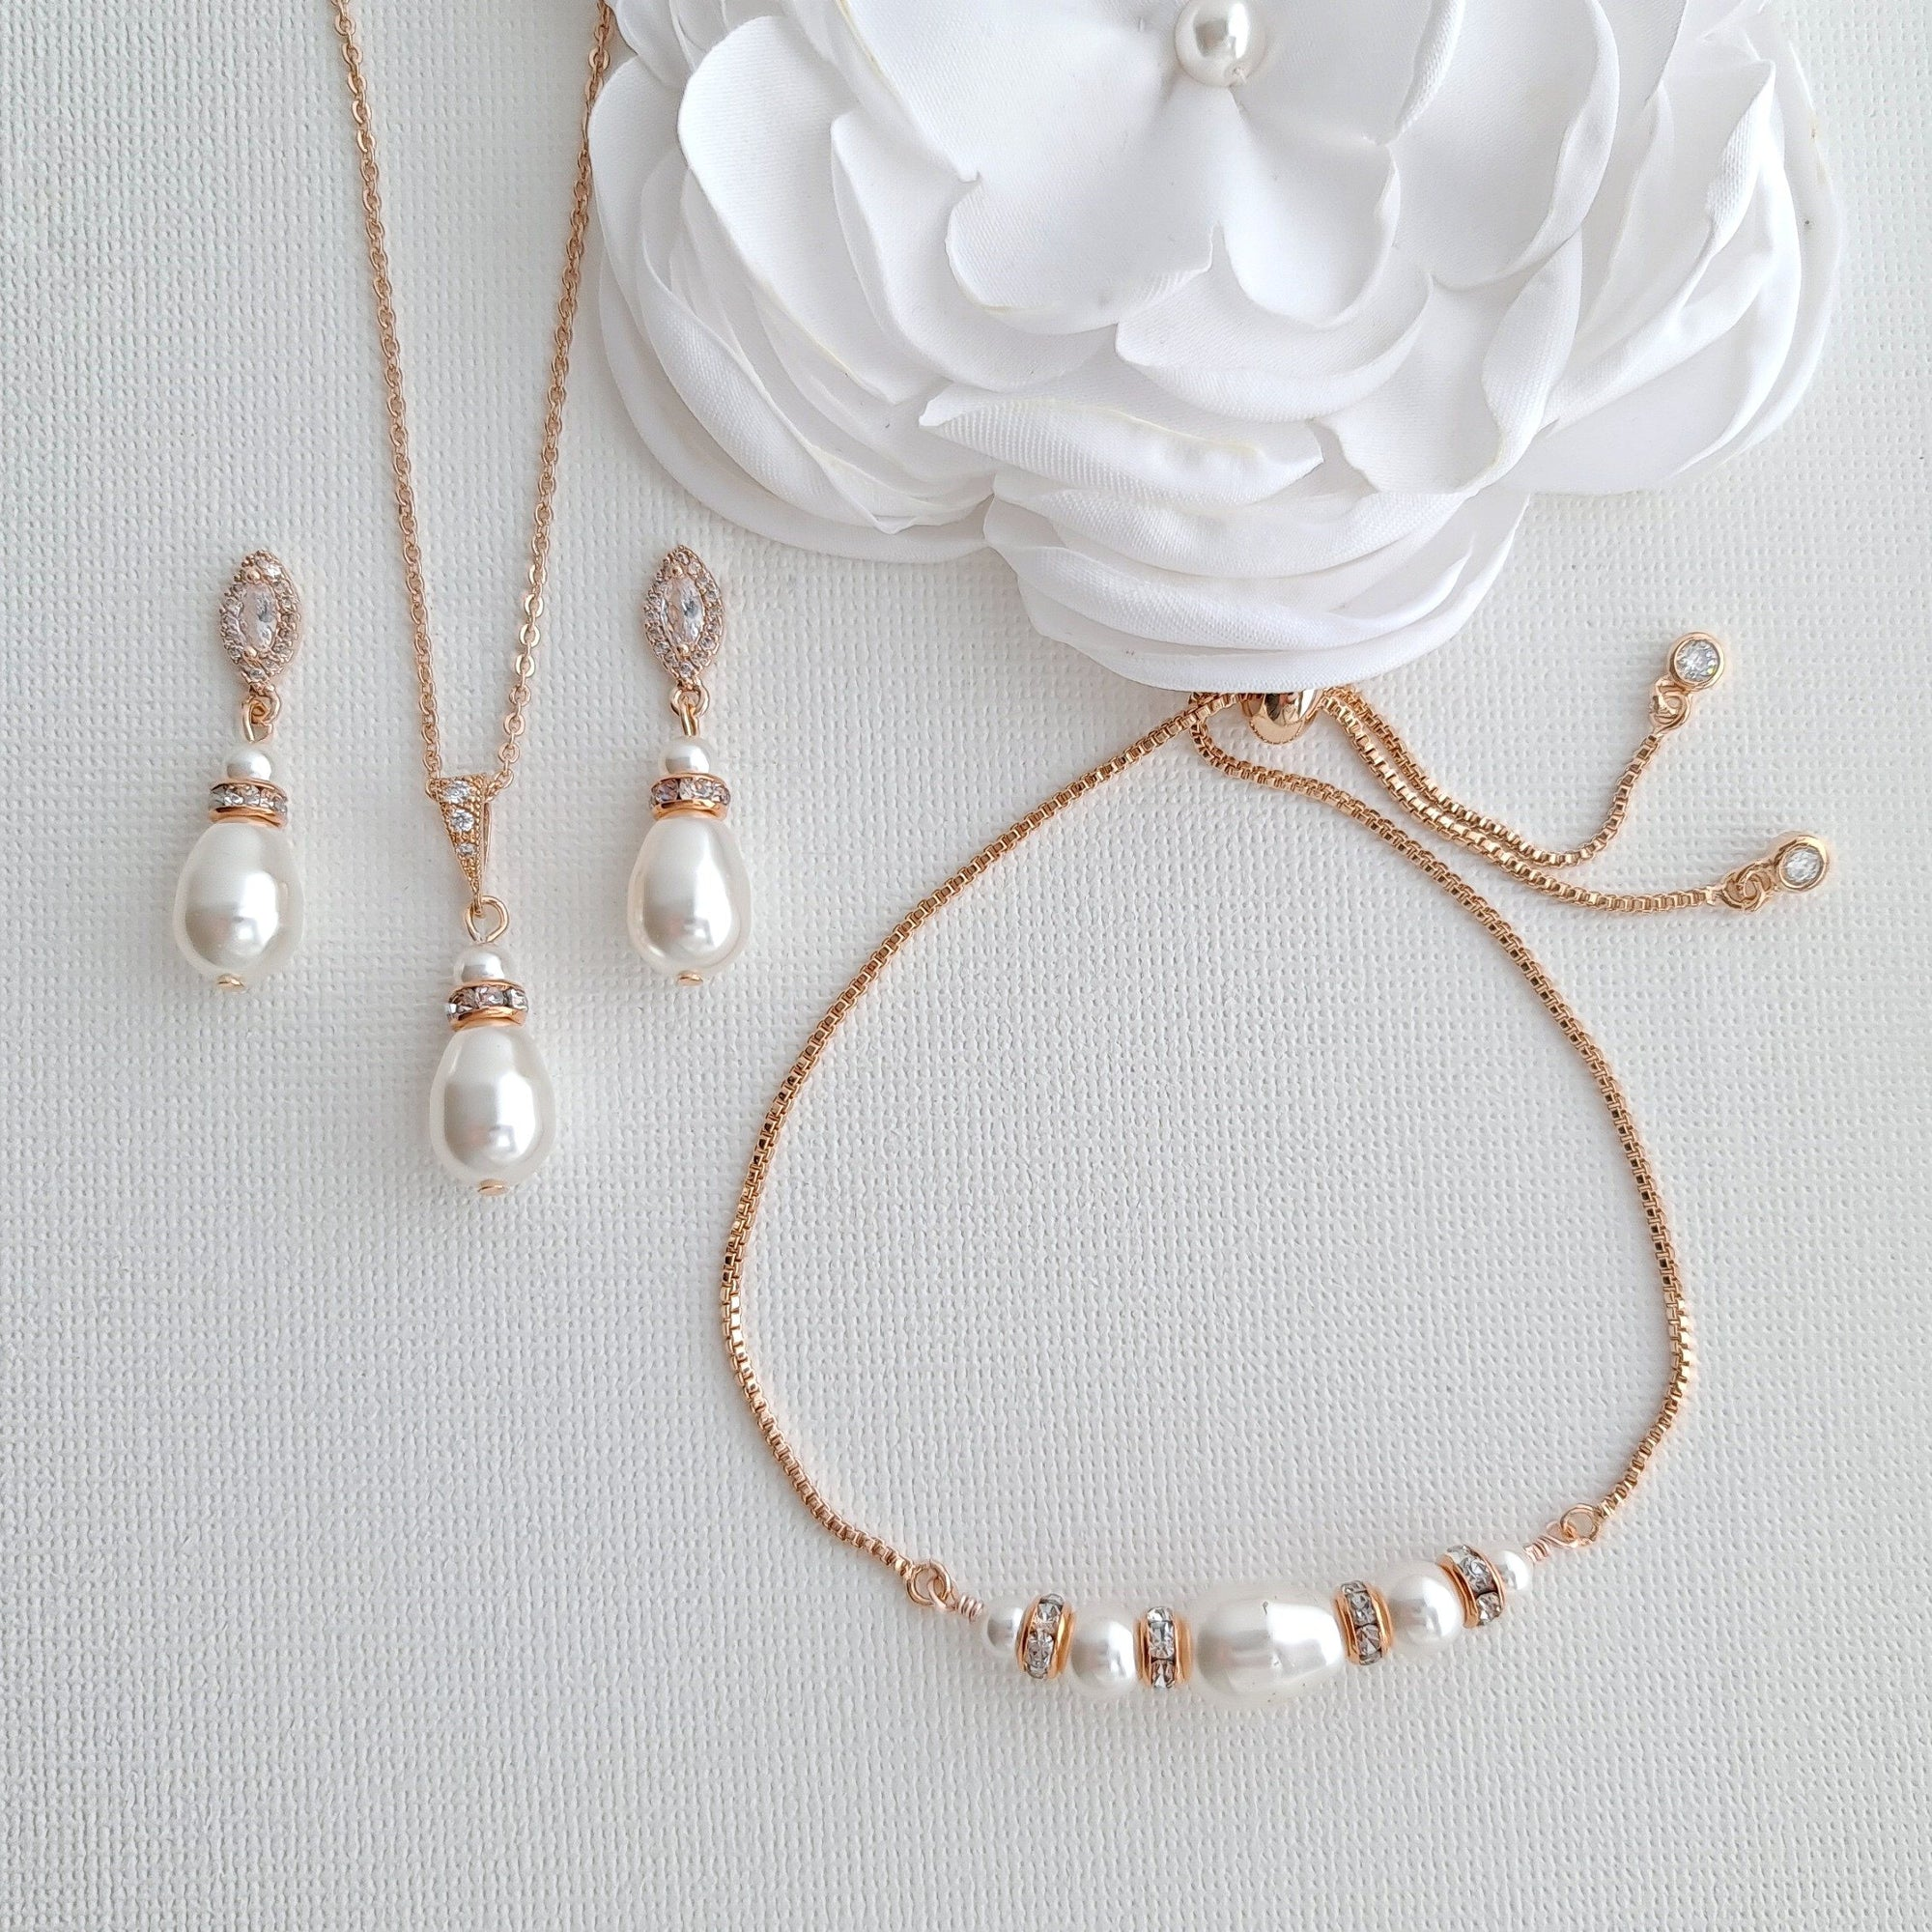 Jewelry Set for Brides With Pearl Bracelet+Pearl Earrings+Pearl Necklace-Ella - PoetryDesigns